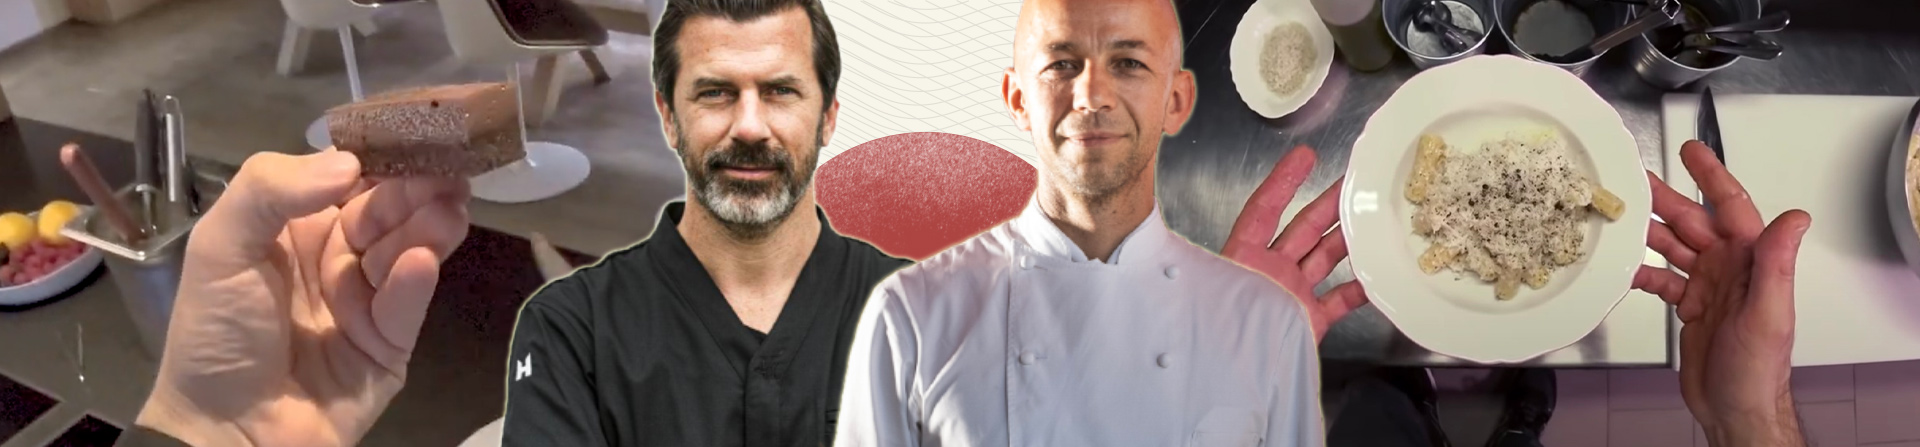 Cook with The World's Best Chefs